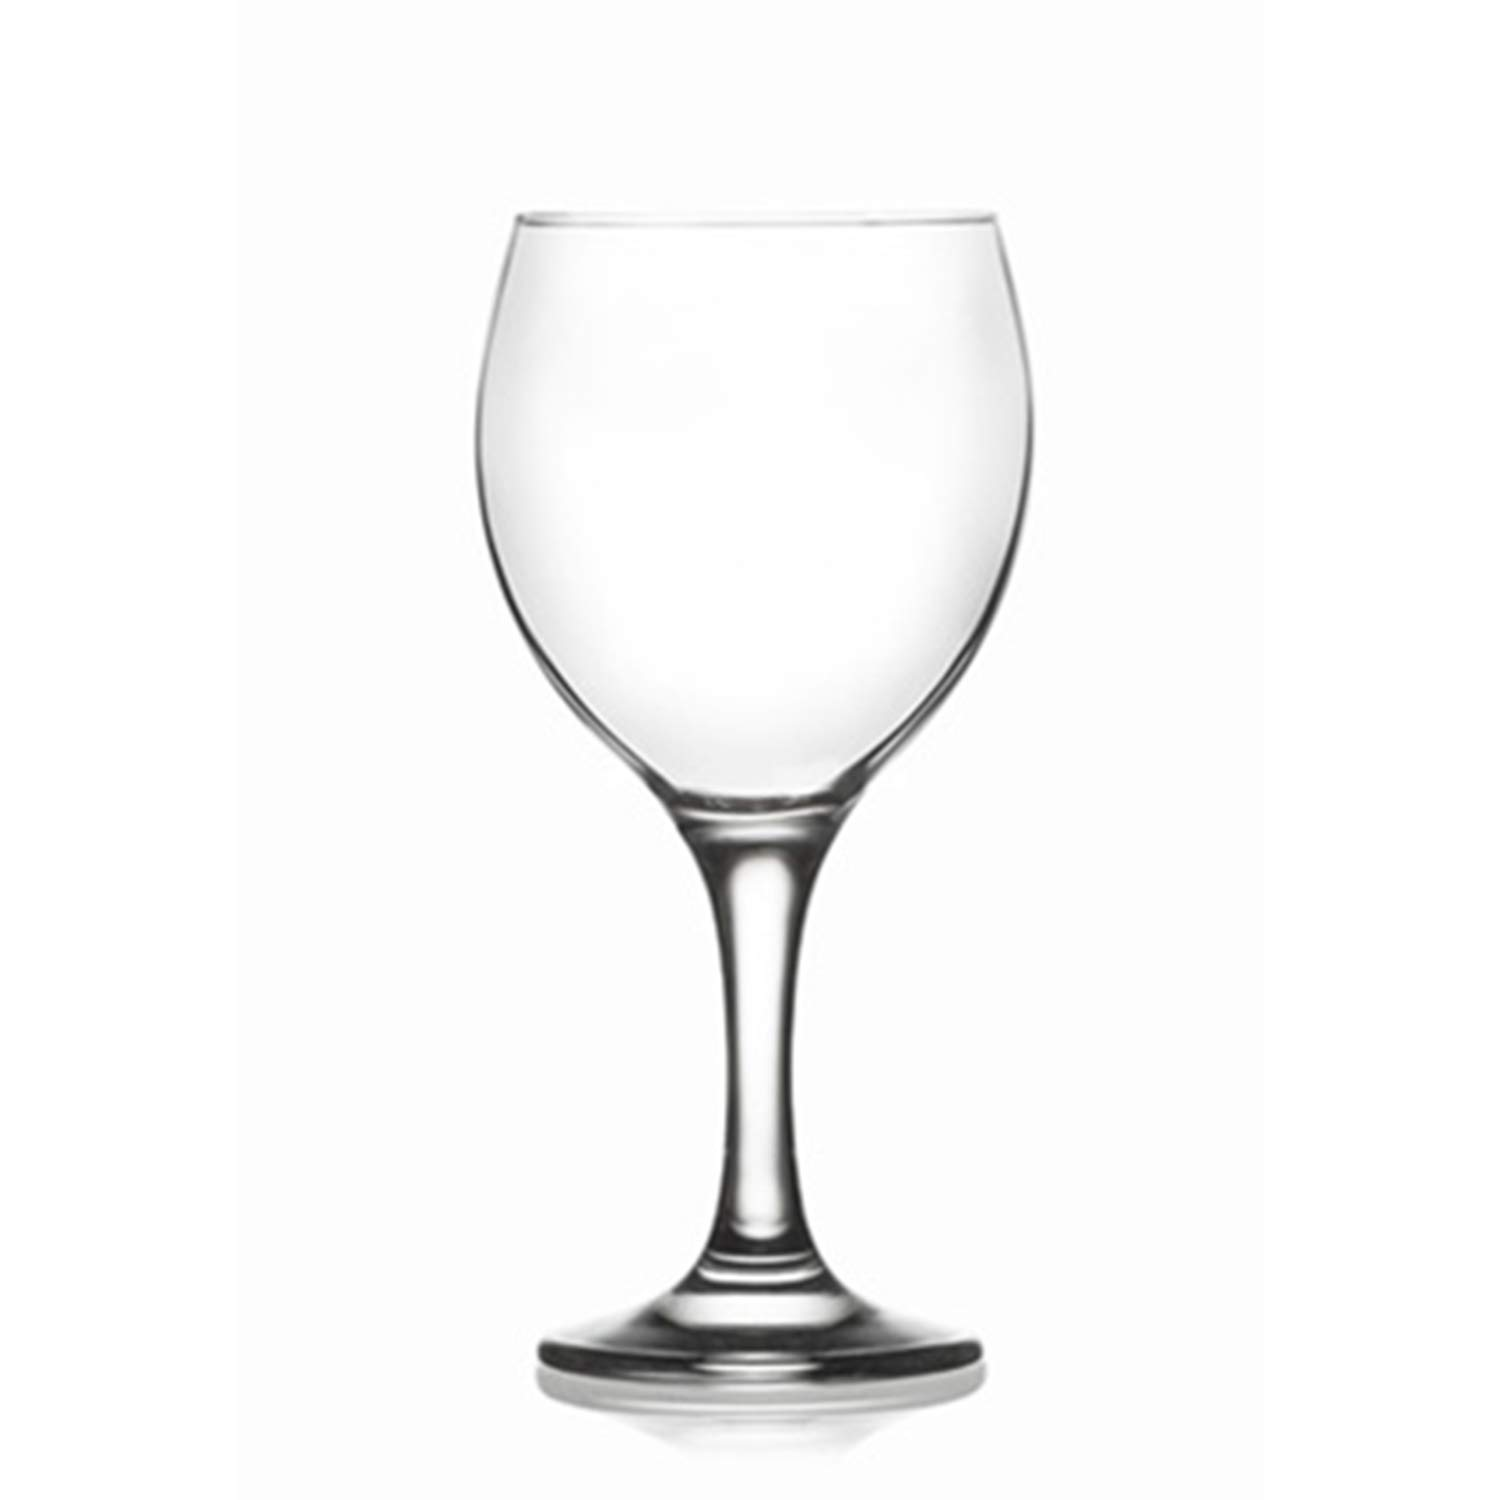 13.5 oz Water Goblet Epure Cremona Collection 4 Piece Wine Glass Set